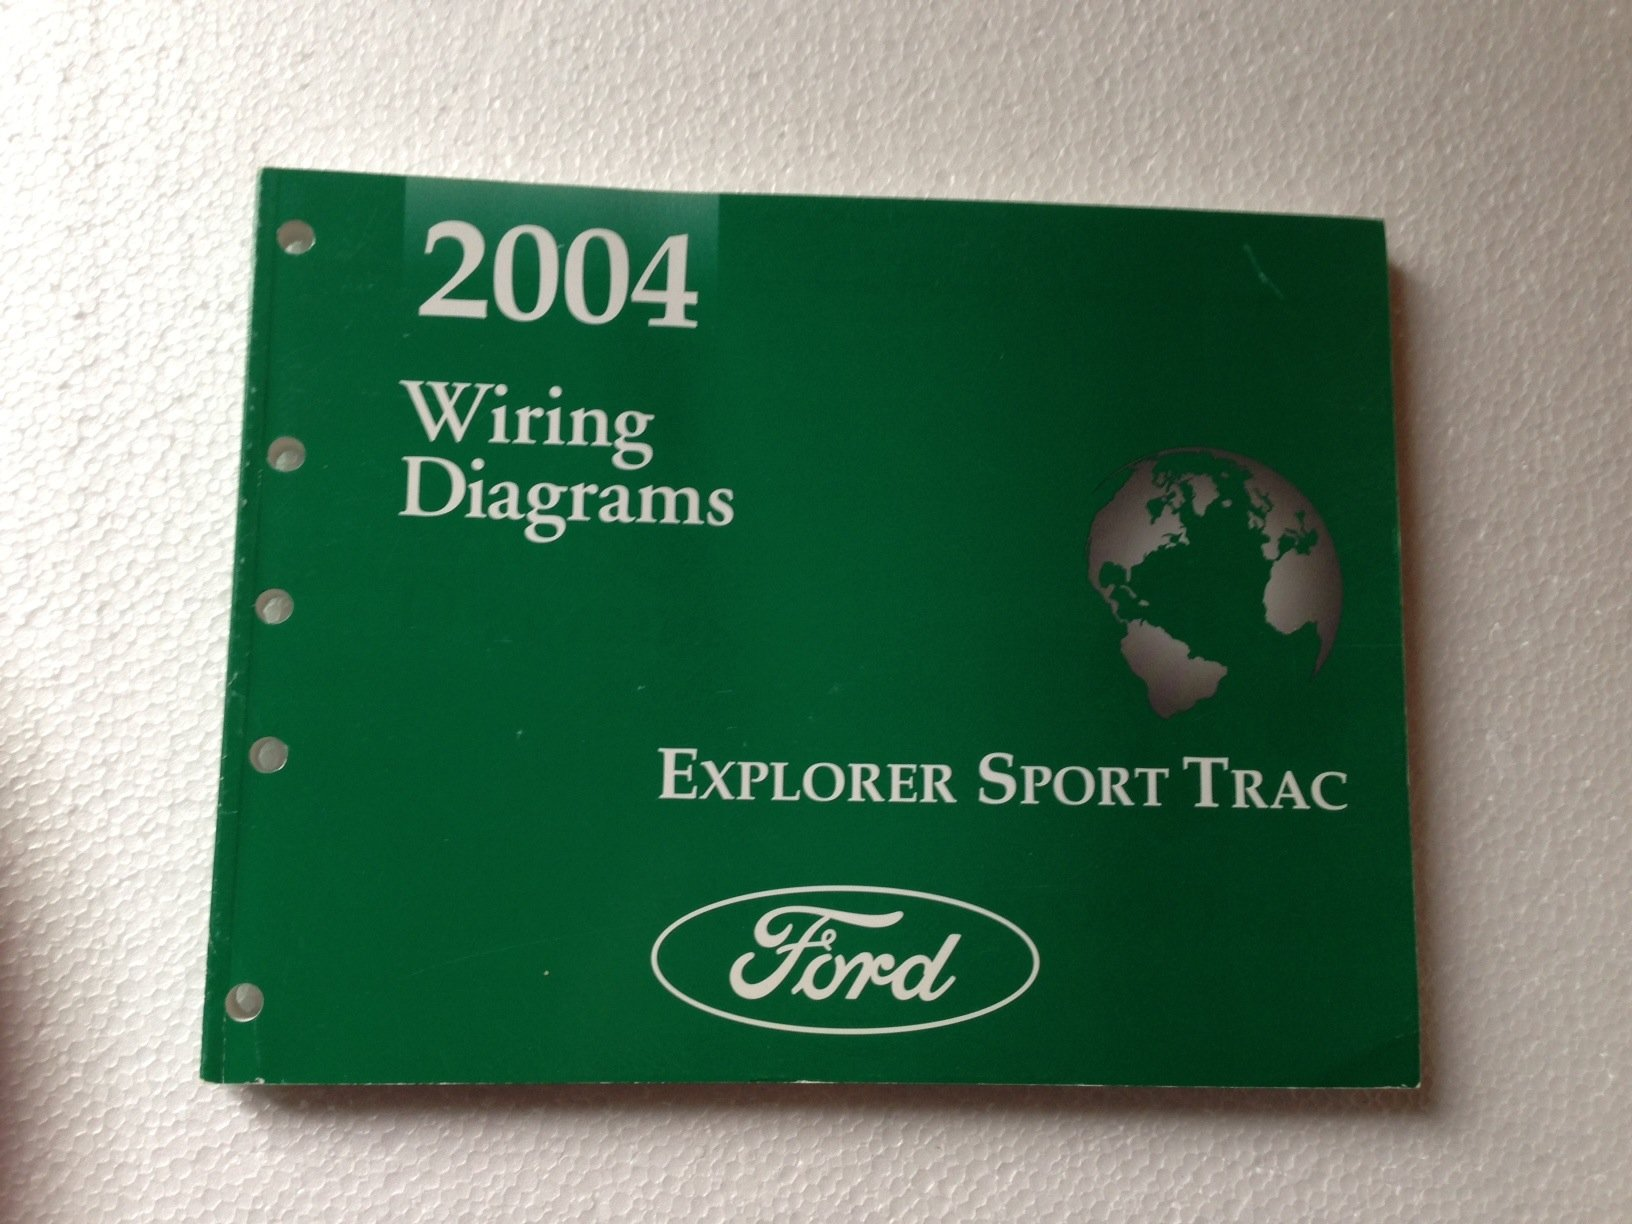 2004 ford explorer sport trac wiring diagrams paperback – 2003